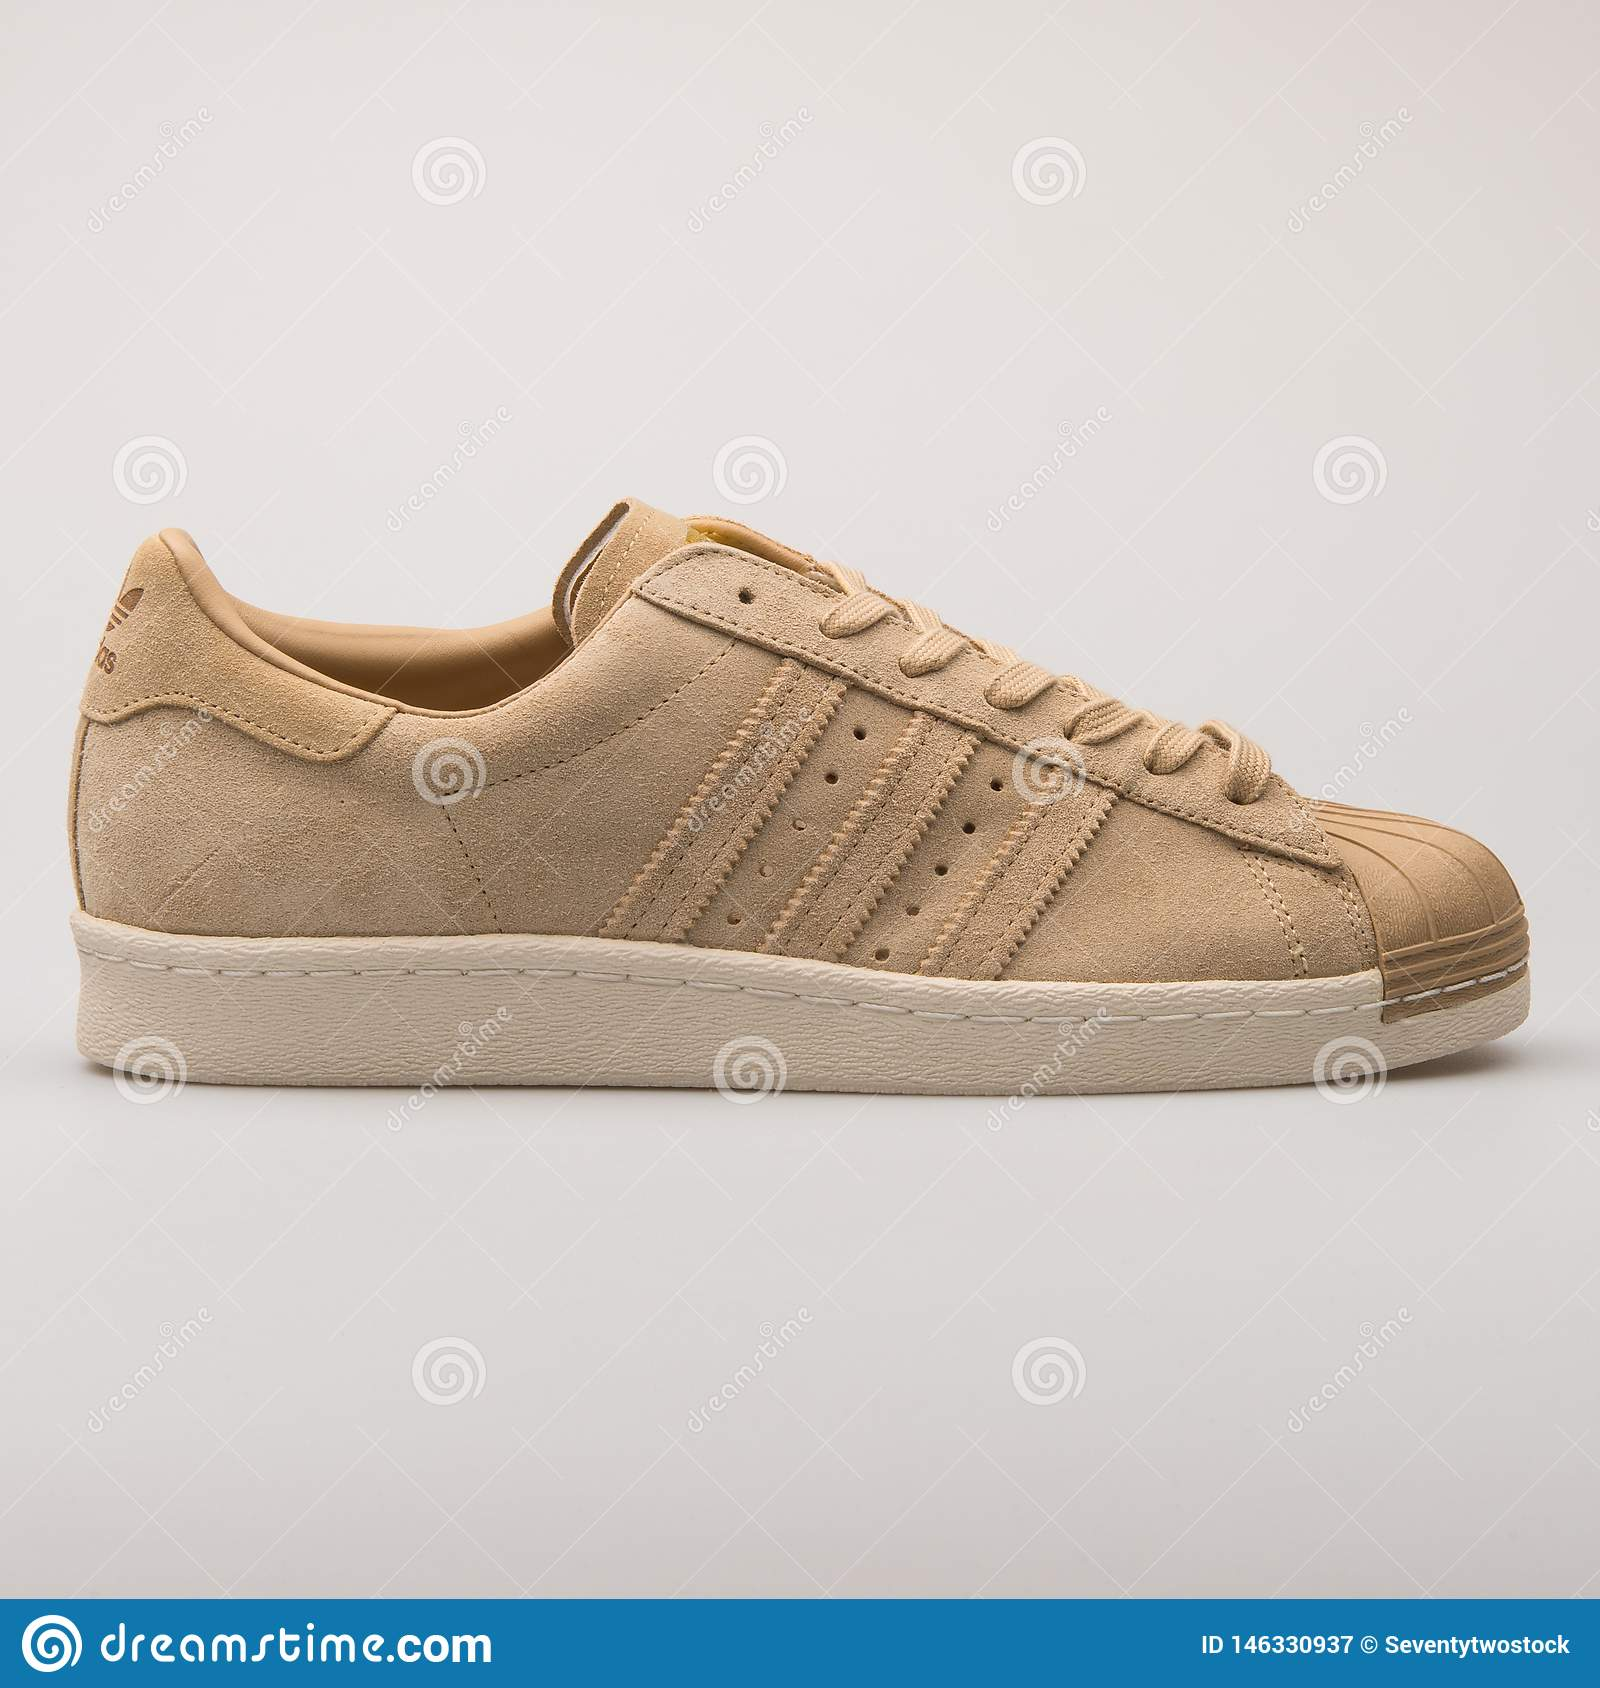 new product 6d172 2bc97 Adidas Superstar 80s Khaki Sneaker Editorial Photography ...